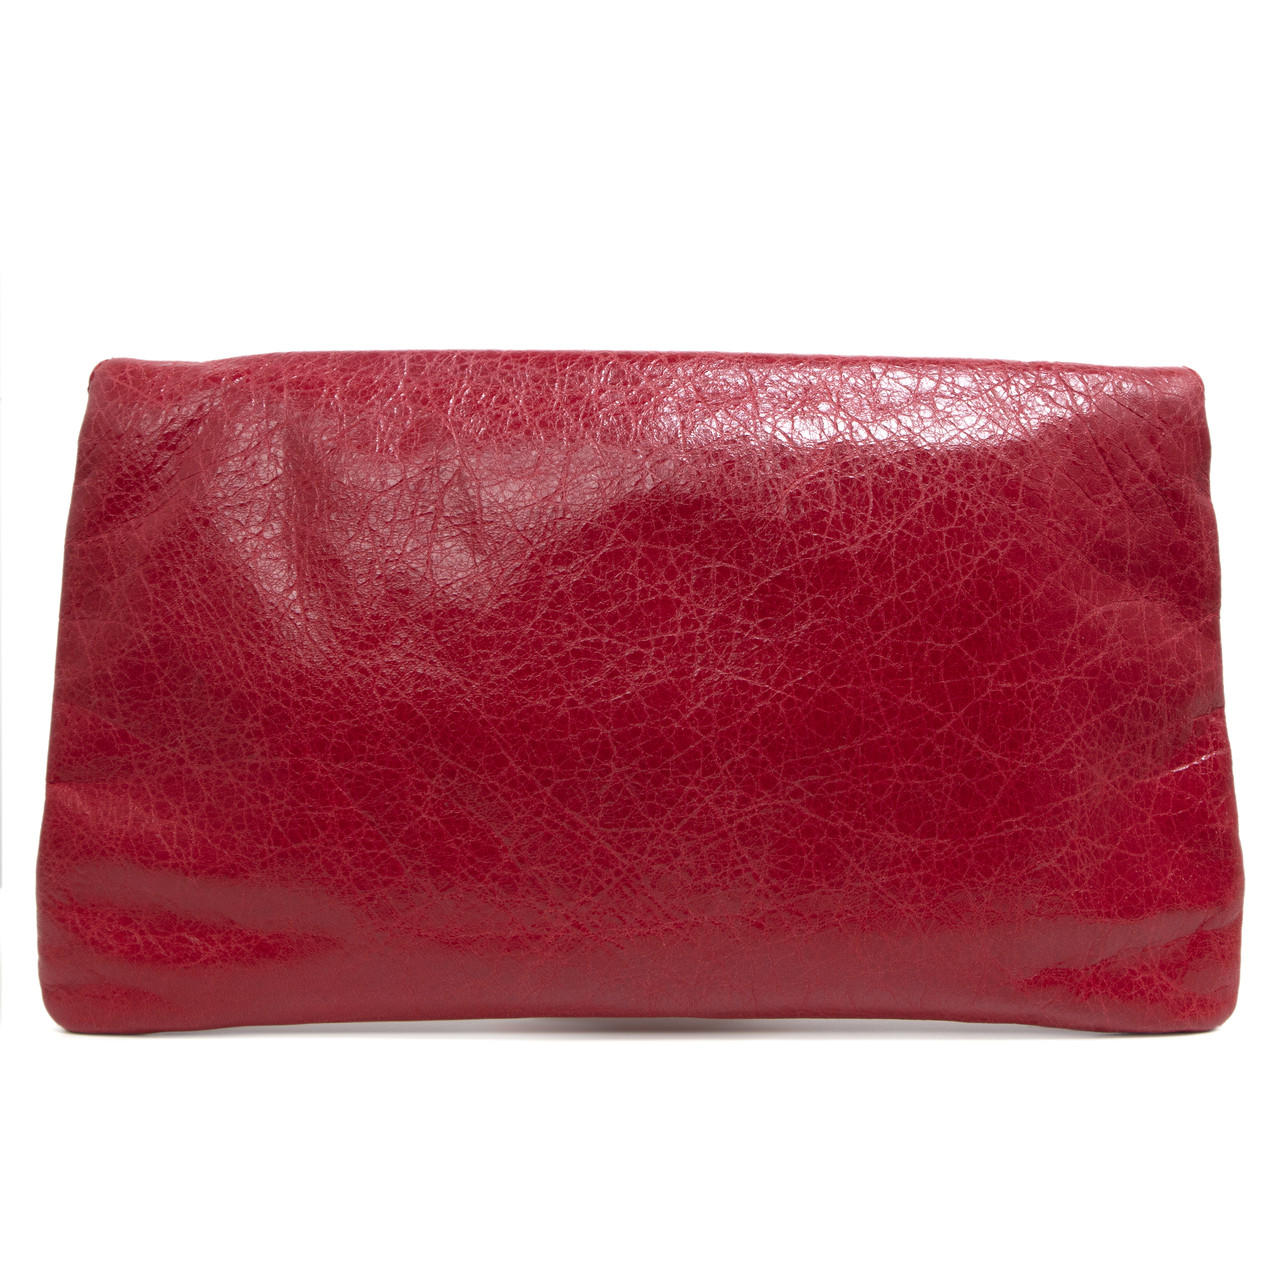 Balenciaga Red Lambskin Giant 12 Envelope Clutch - modaselle d5c6727a662f7